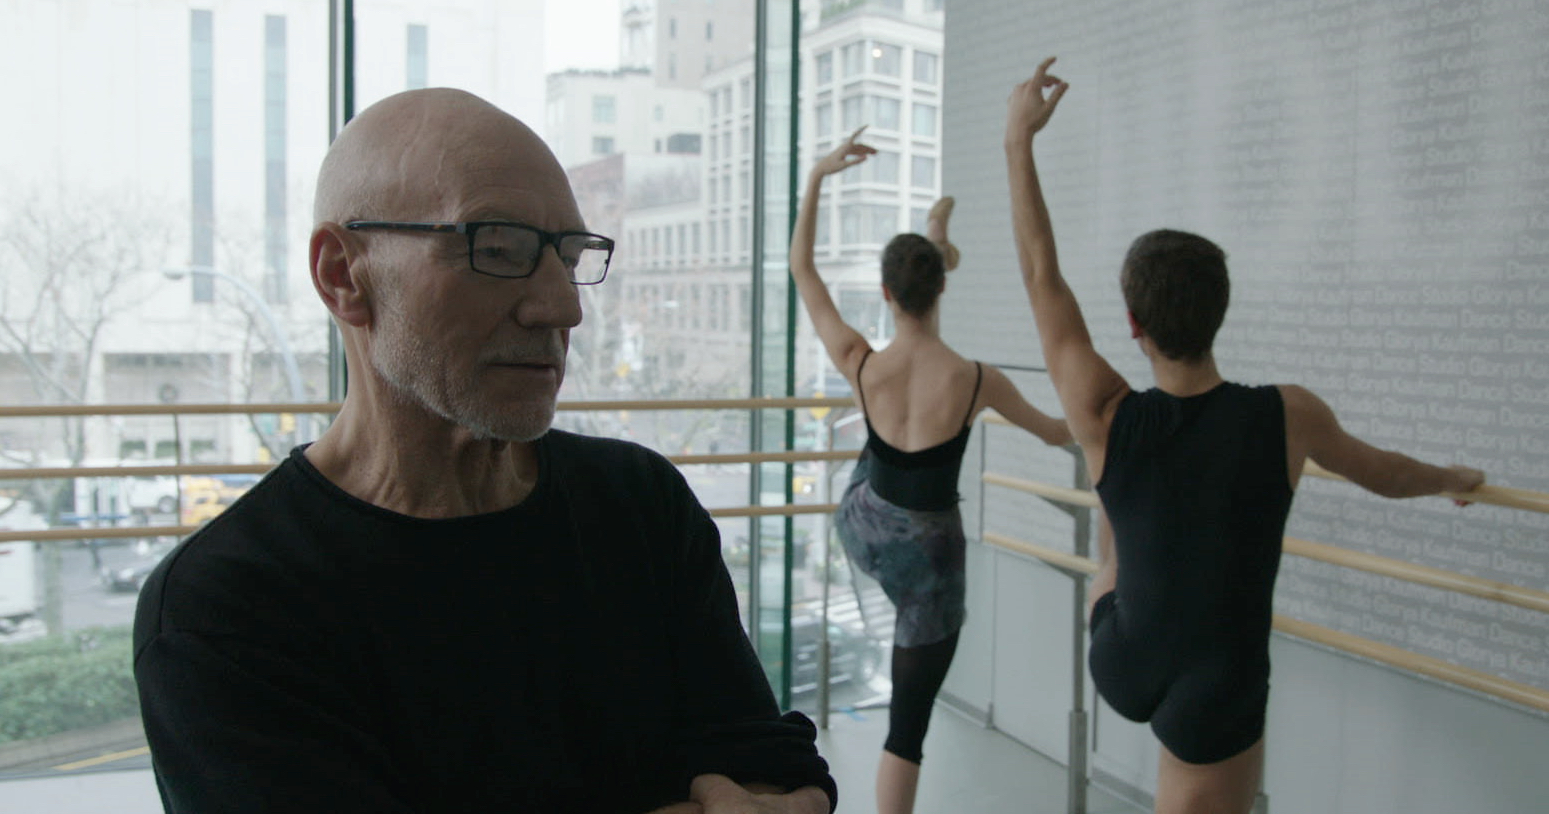 Patrick Stewart stars as Juilliard professor Tobi Powell